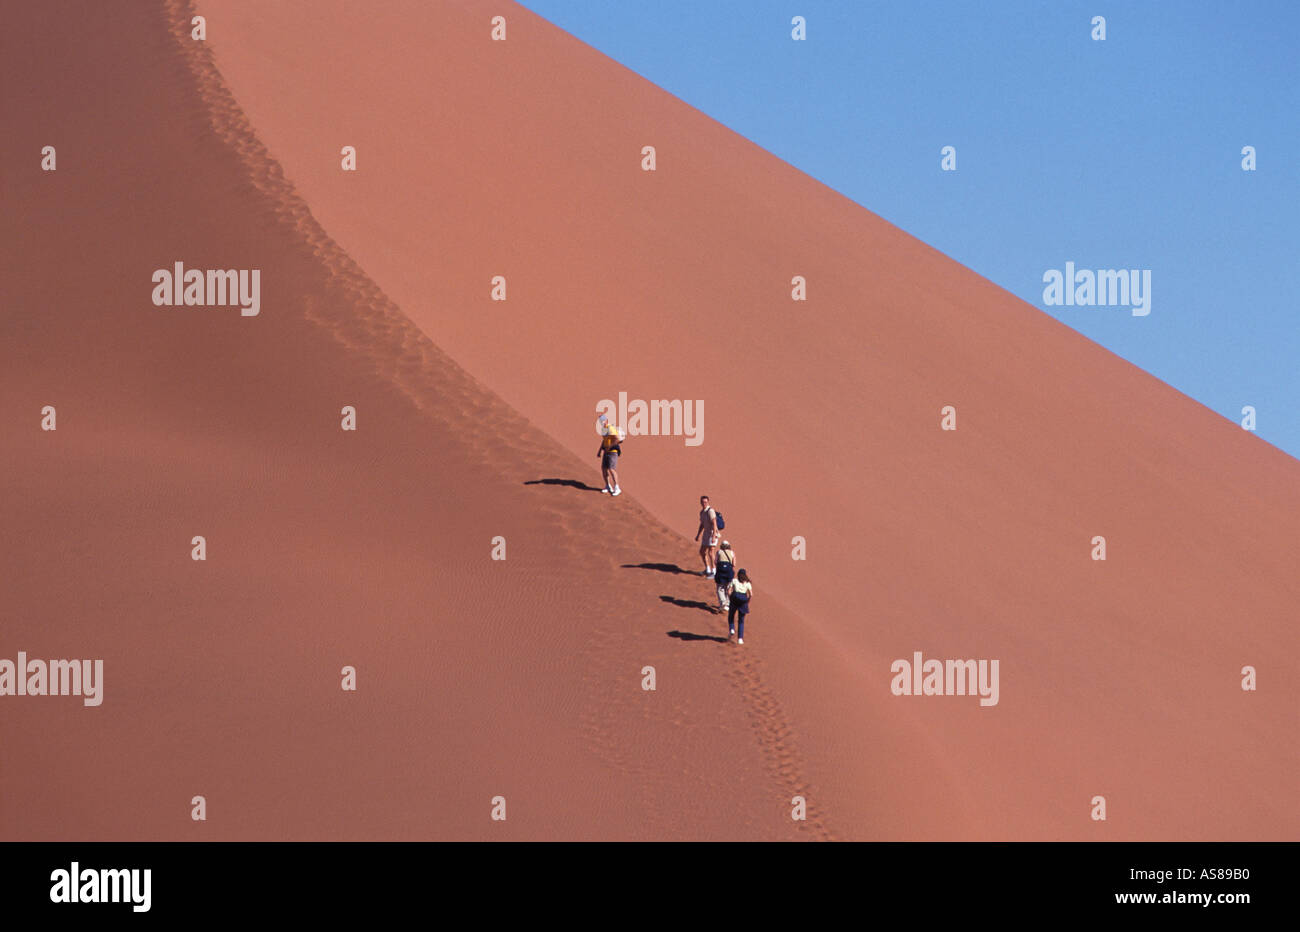 Dune 45 travellers climbing the sand dune Namib Naukluft National Park Namibia - Stock Image